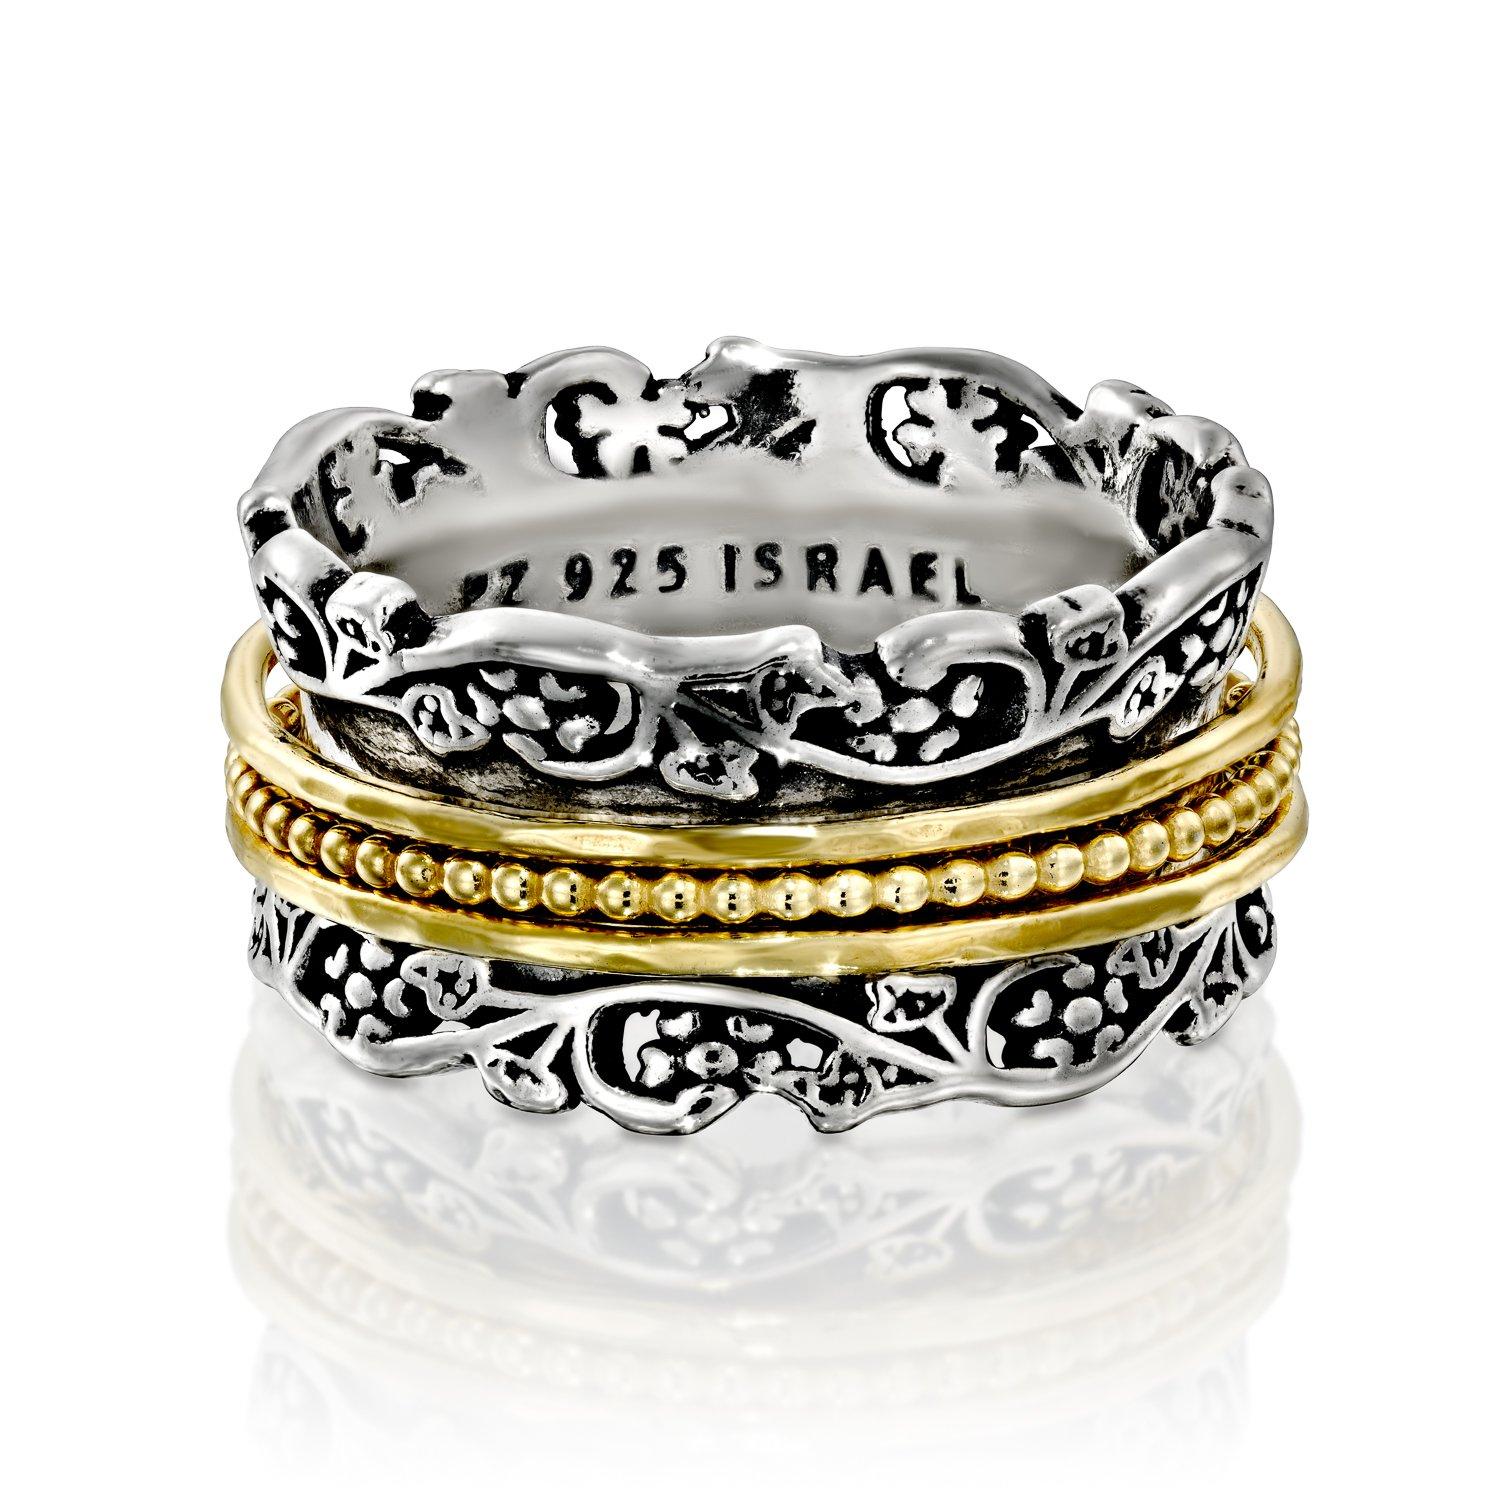 Paz Creations YG .925 Sterling Silver Ring With Gold Over Silver Spinners, Made in Israel (7) by PZ